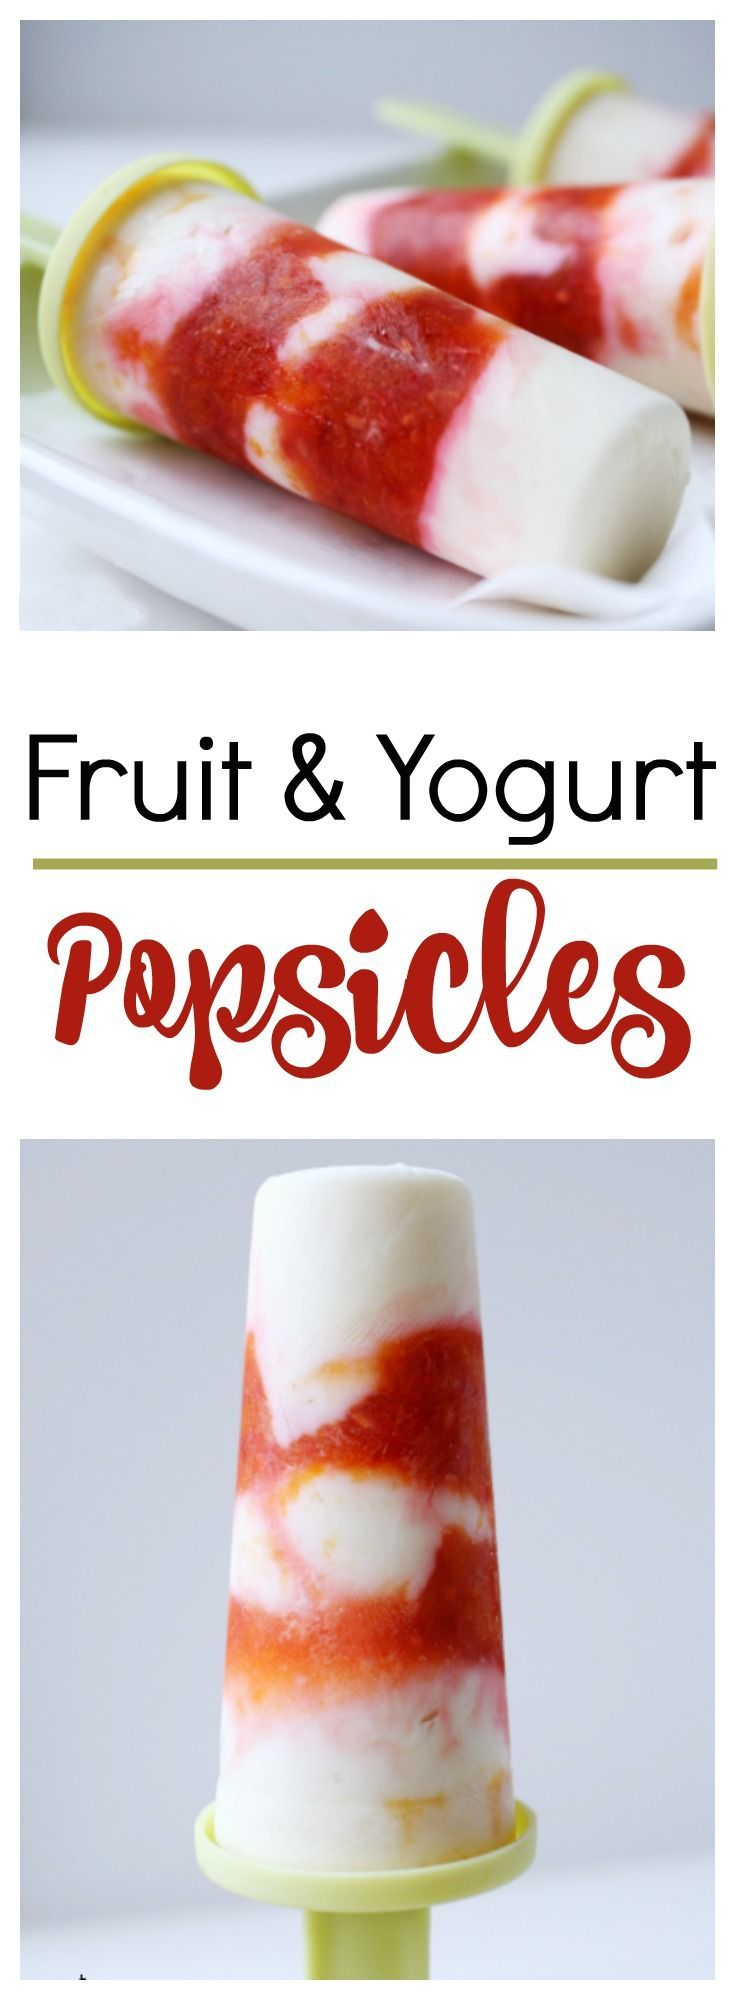 These Fruit and Yogurt Pops are the perfect summertime treat! Mix plain or vanilla yogurt with your favorite fruit to make these easy and refreshing fruit and yogurt popsicles. via @gracegoodeats